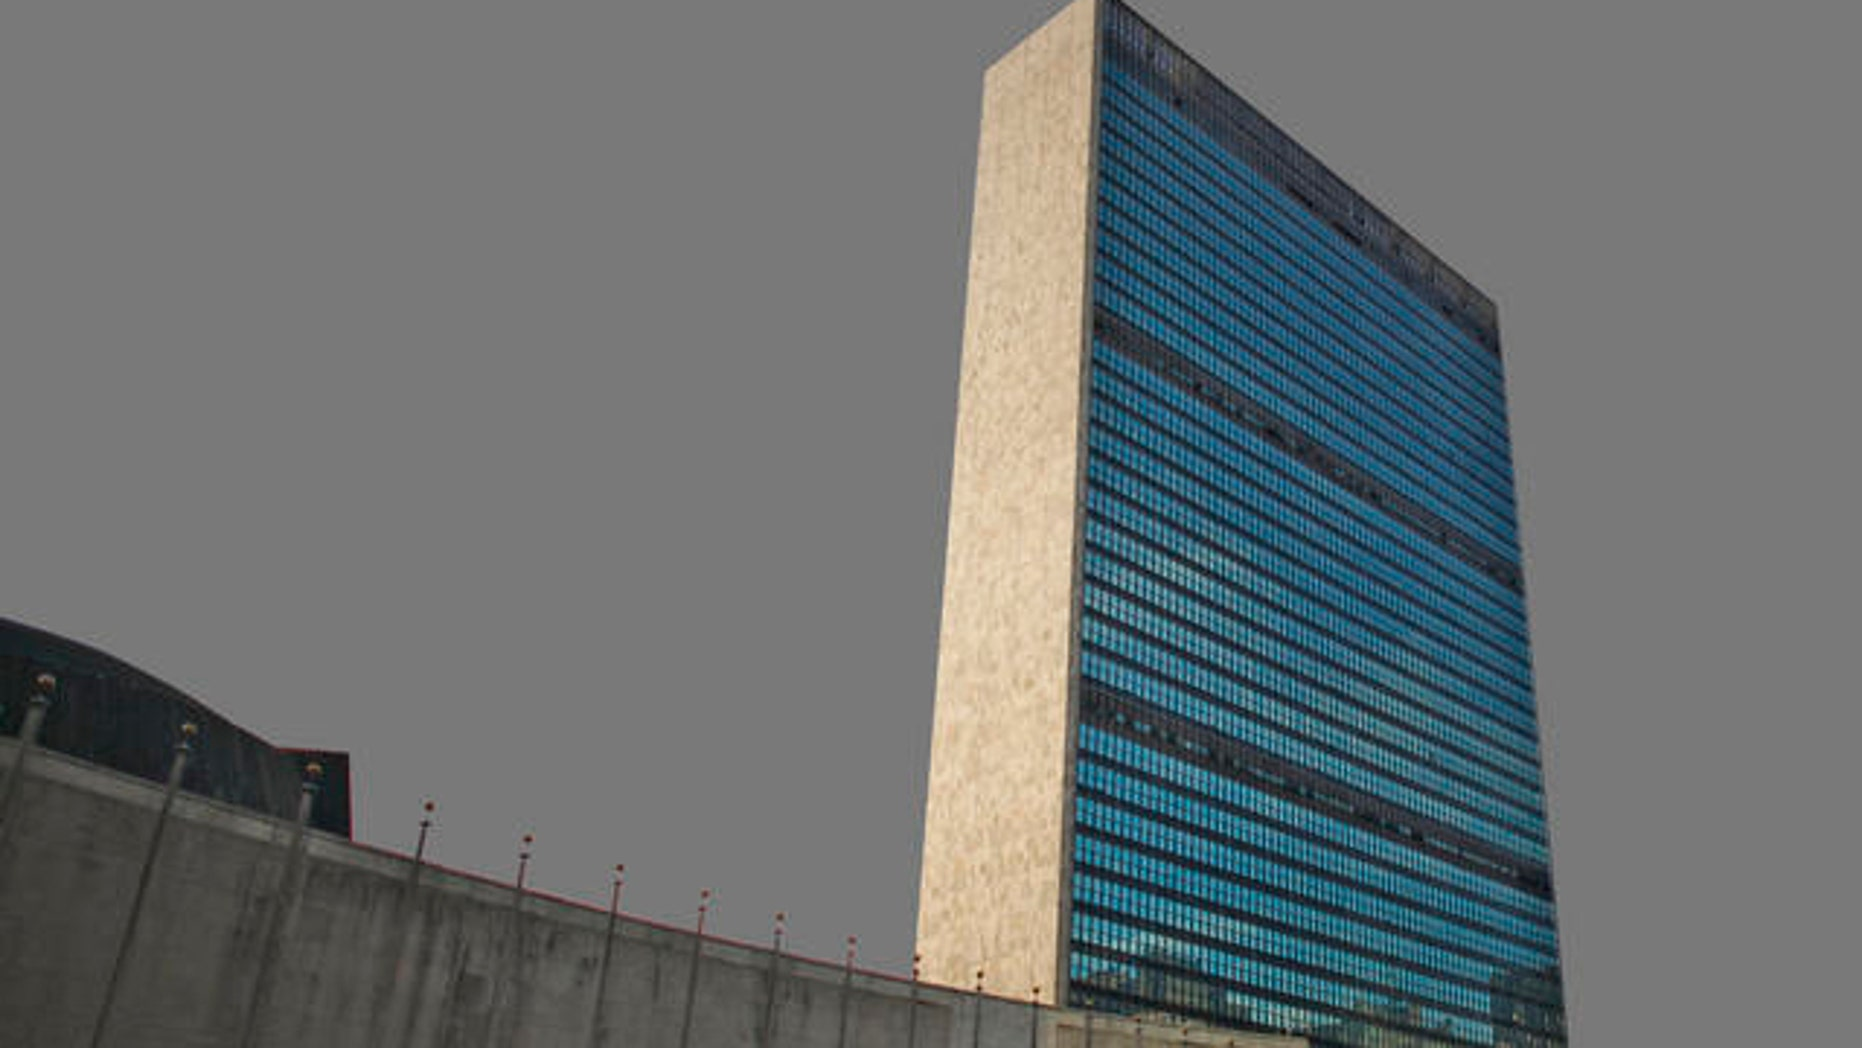 The UN has appointed Iran to a key role in negotiating a global arms control deal.